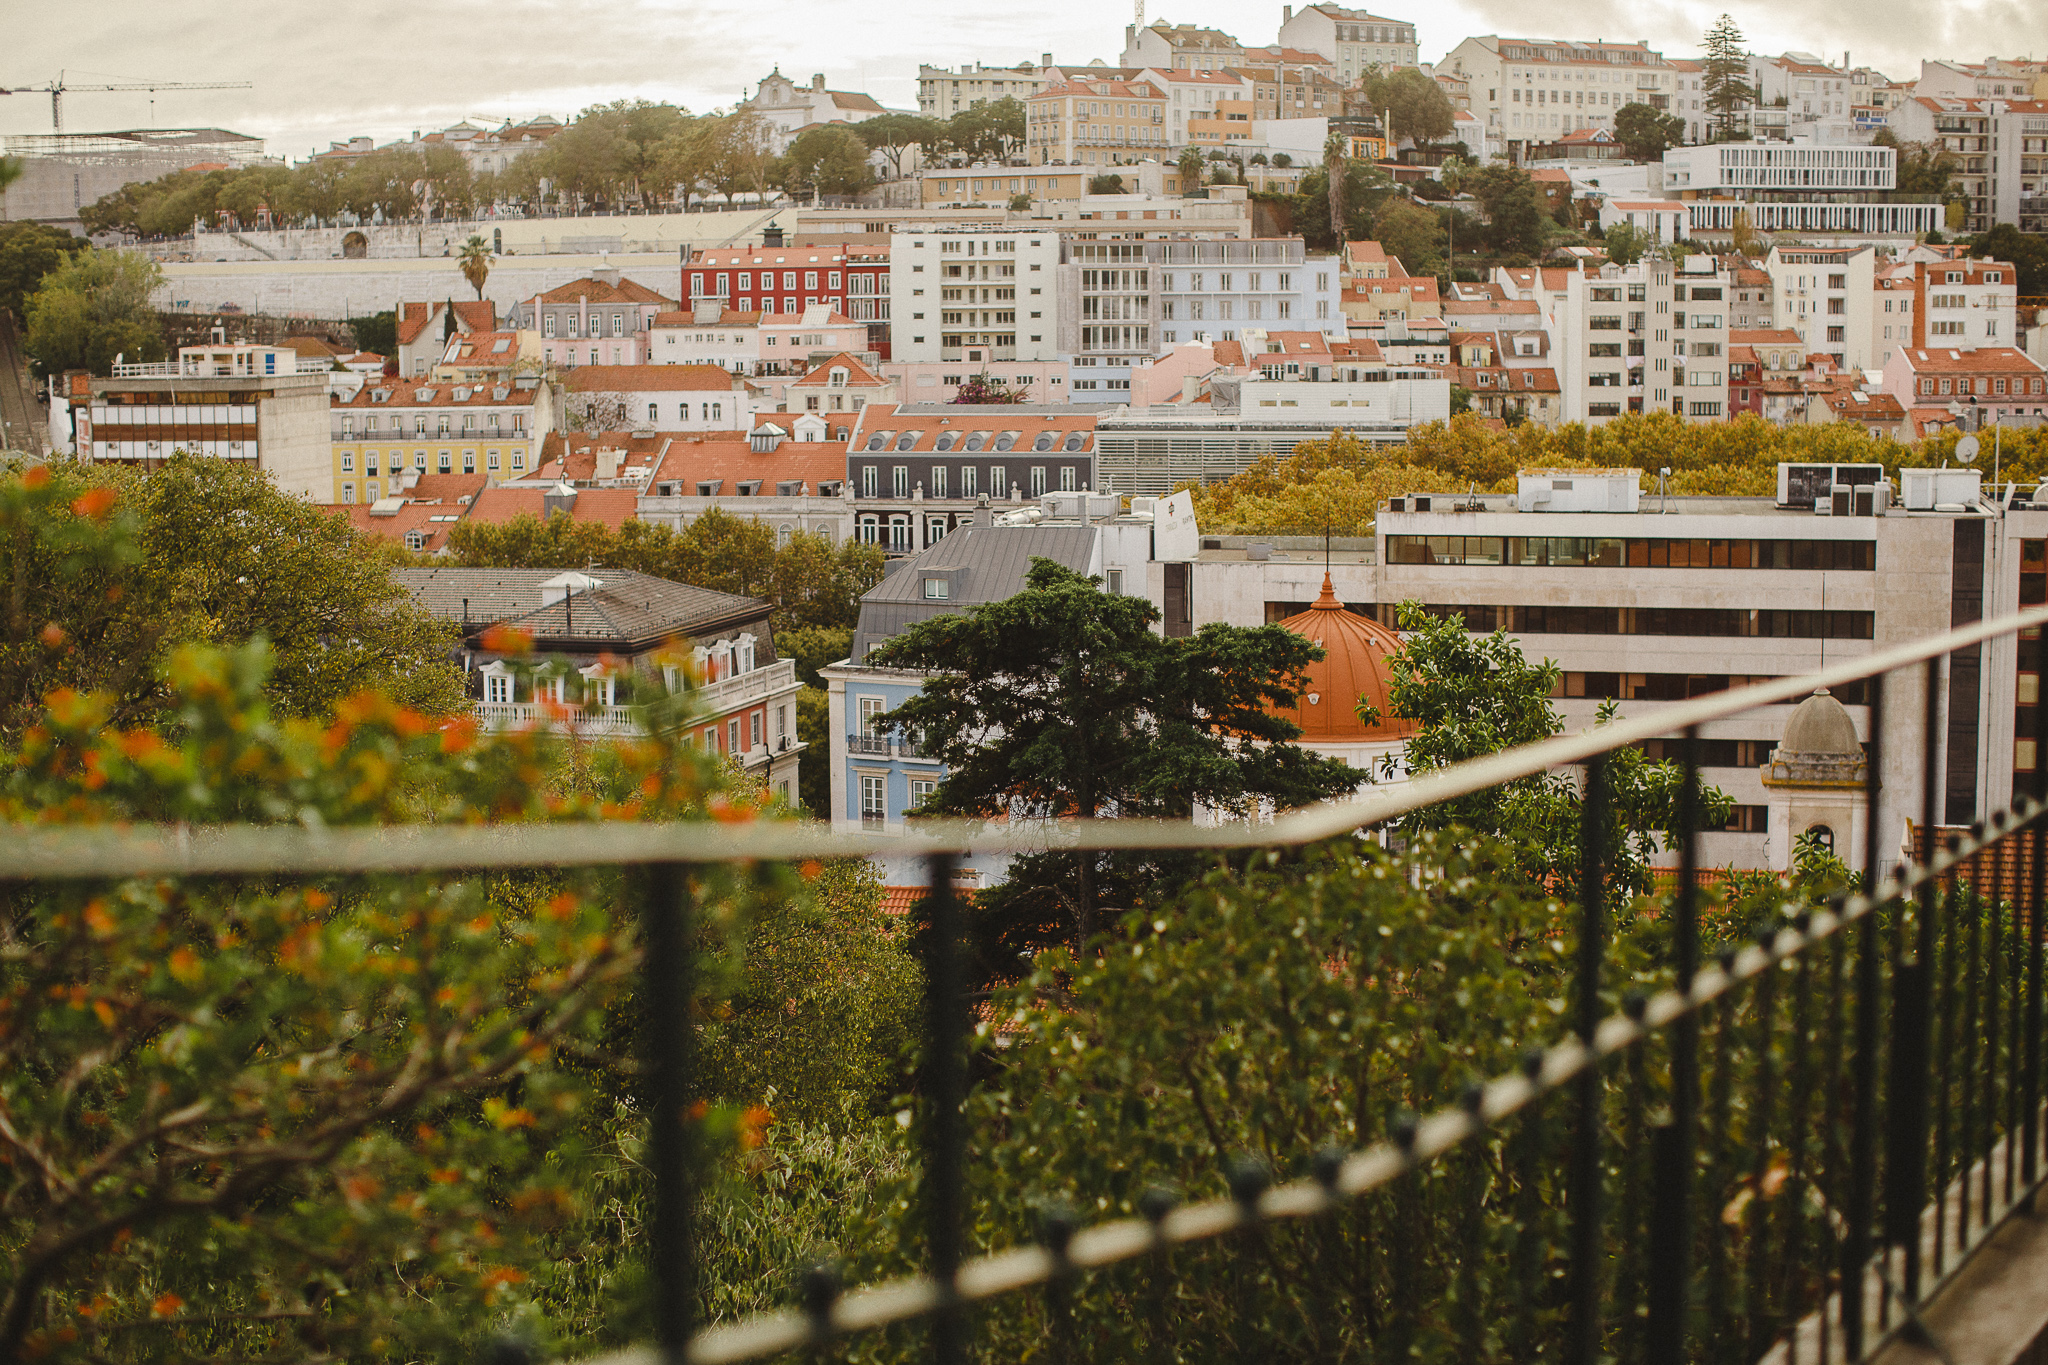 Overview of Lisbon at the end of the day, by Hello Twiggs.